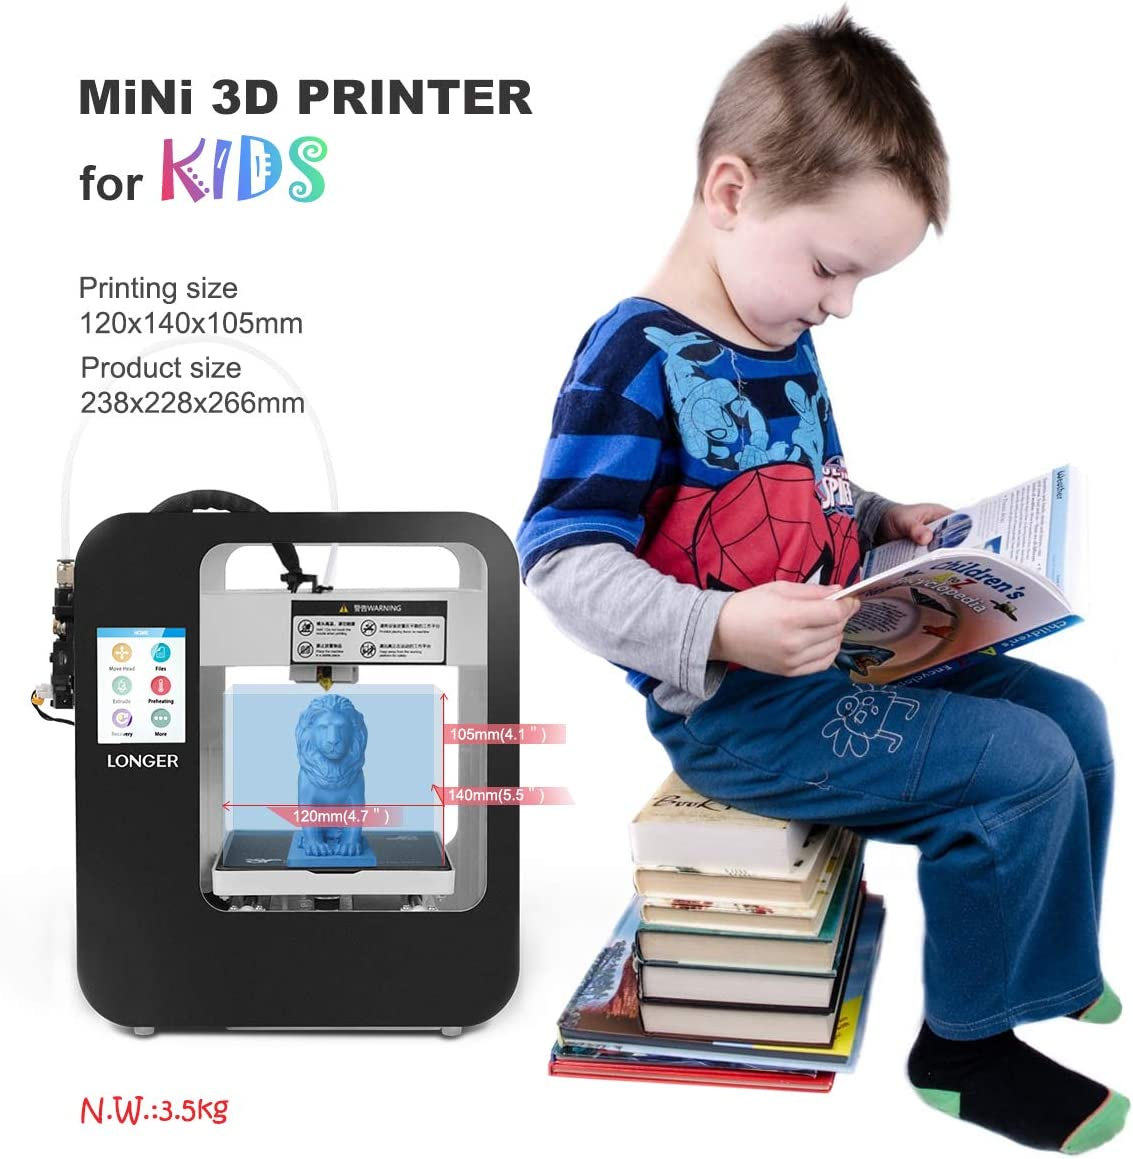 99/% Pre-Assembled Entry-Level Printer with Touch Screen Resume Printing Removable Magnetic Build Plate LONGER Cube 2 Mini 3D Printer for Kids